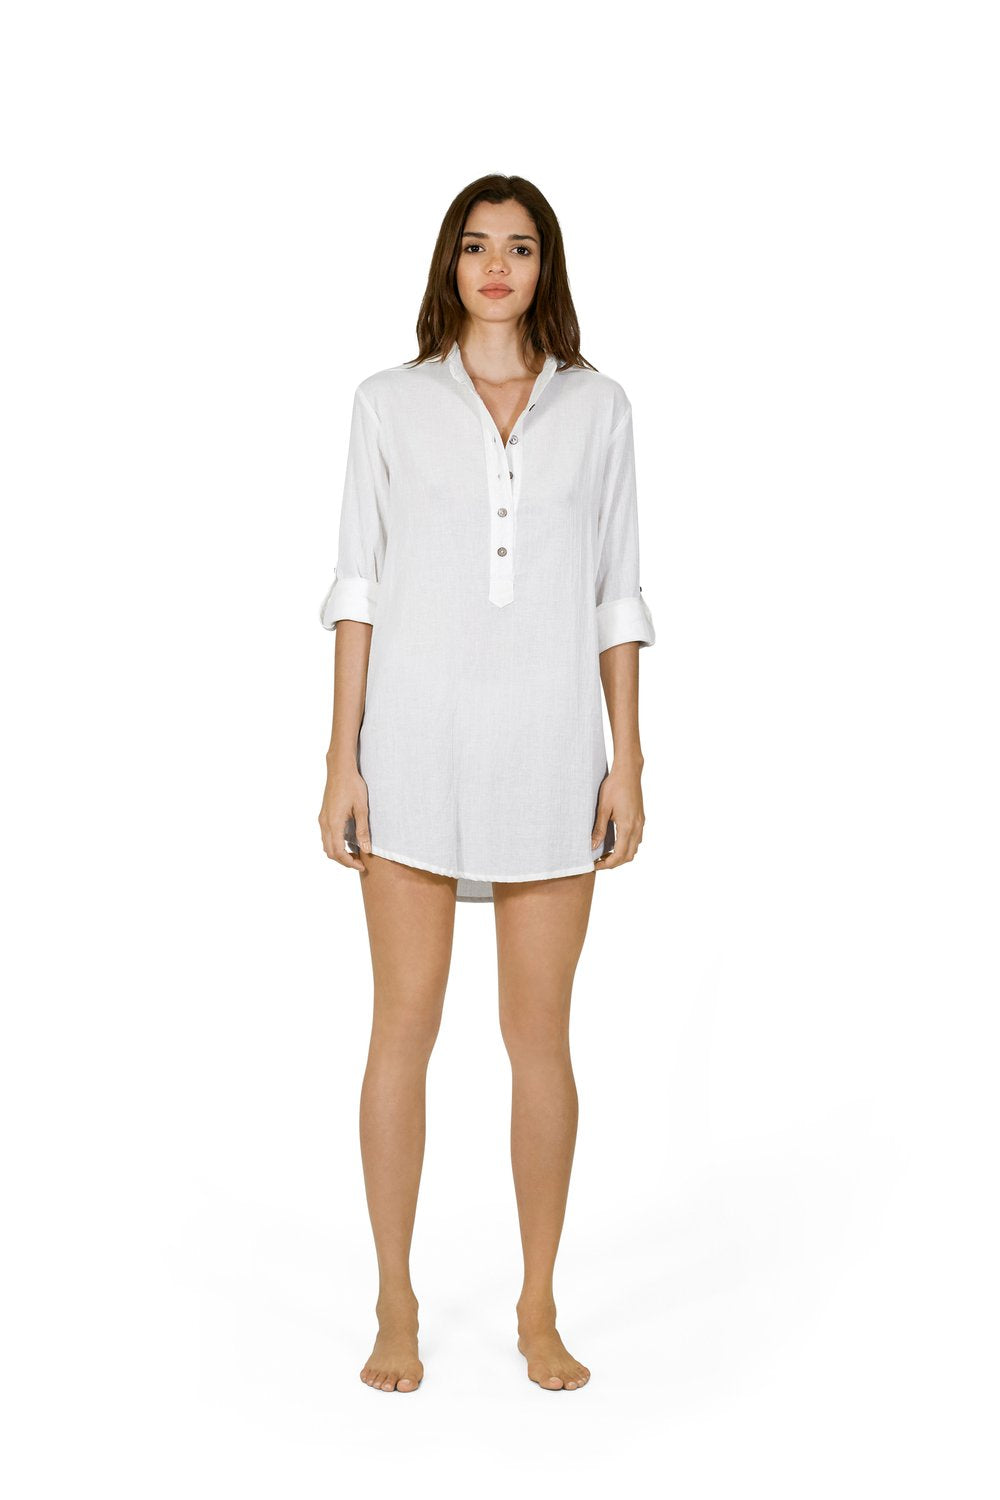 Buy Sanbasics Beach Shirt | Buy Sanbasics Fashion Online